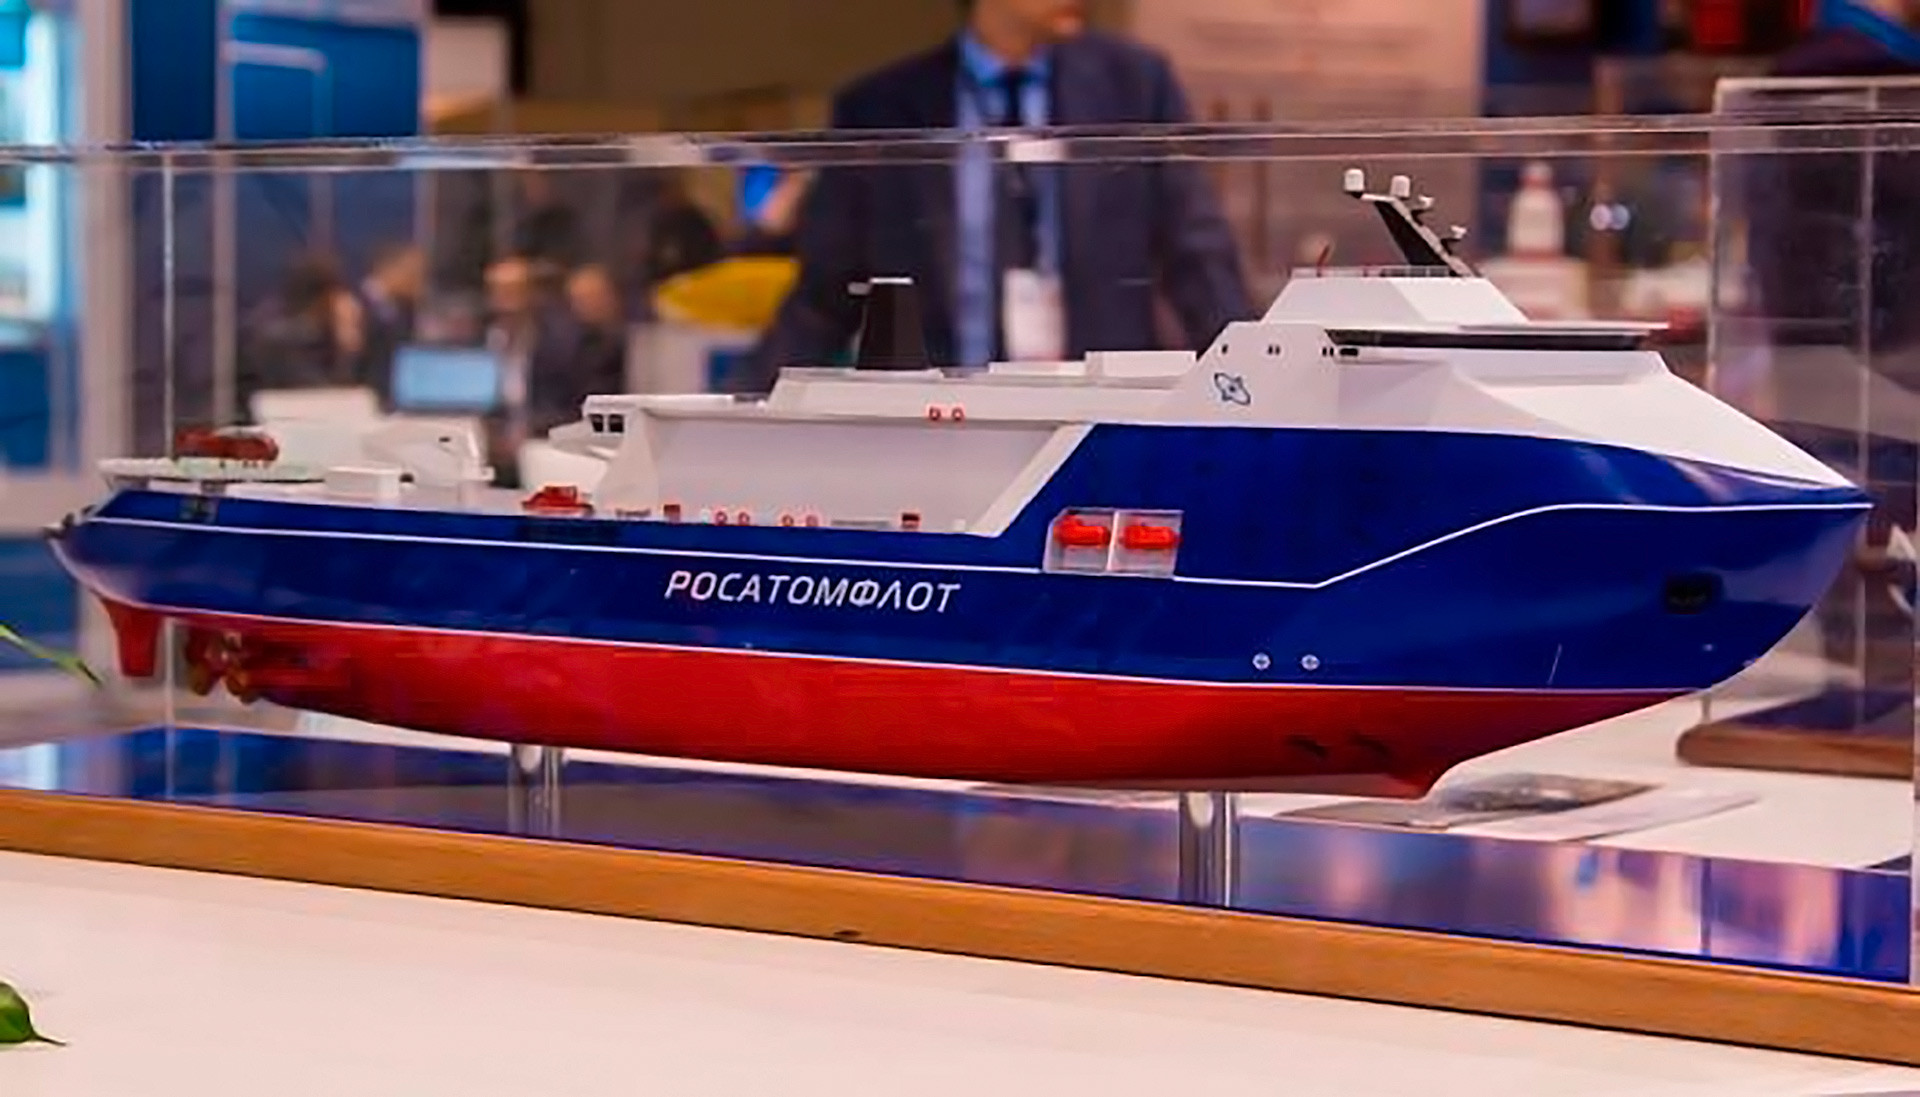 It's one of the big money projects to replace the Soviet era icebreakers currently in service in the Russian fleet. The new one will have a speed of 14 knots (about 24 km/h) and be able to break ice up to 4.4 m thick.